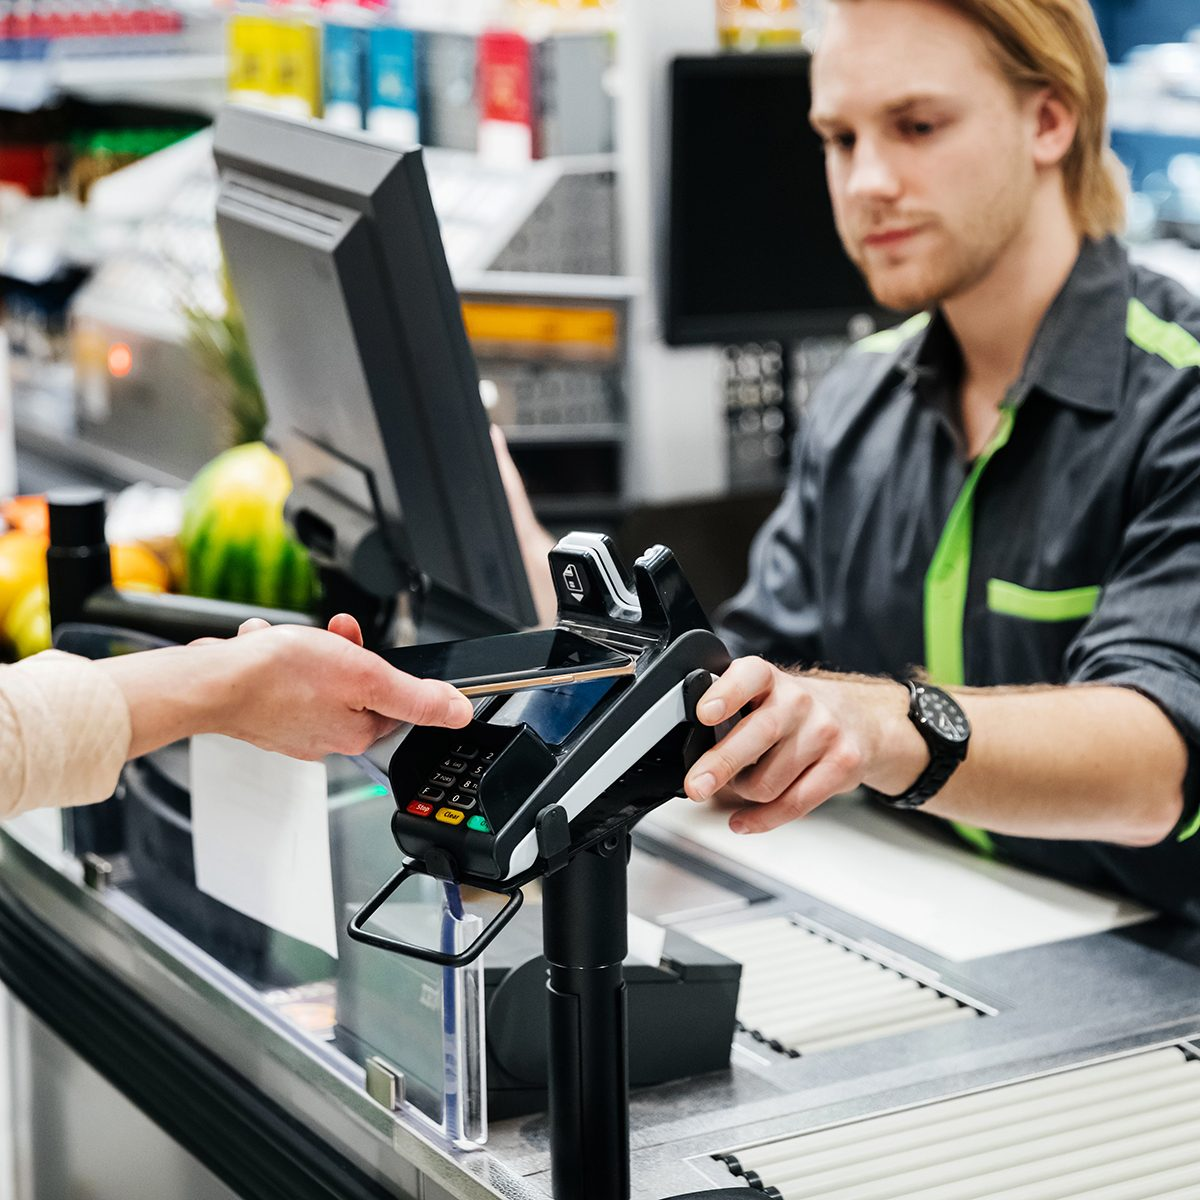 A woman paying for her groceries with her smartphone, using the contactless payment option.